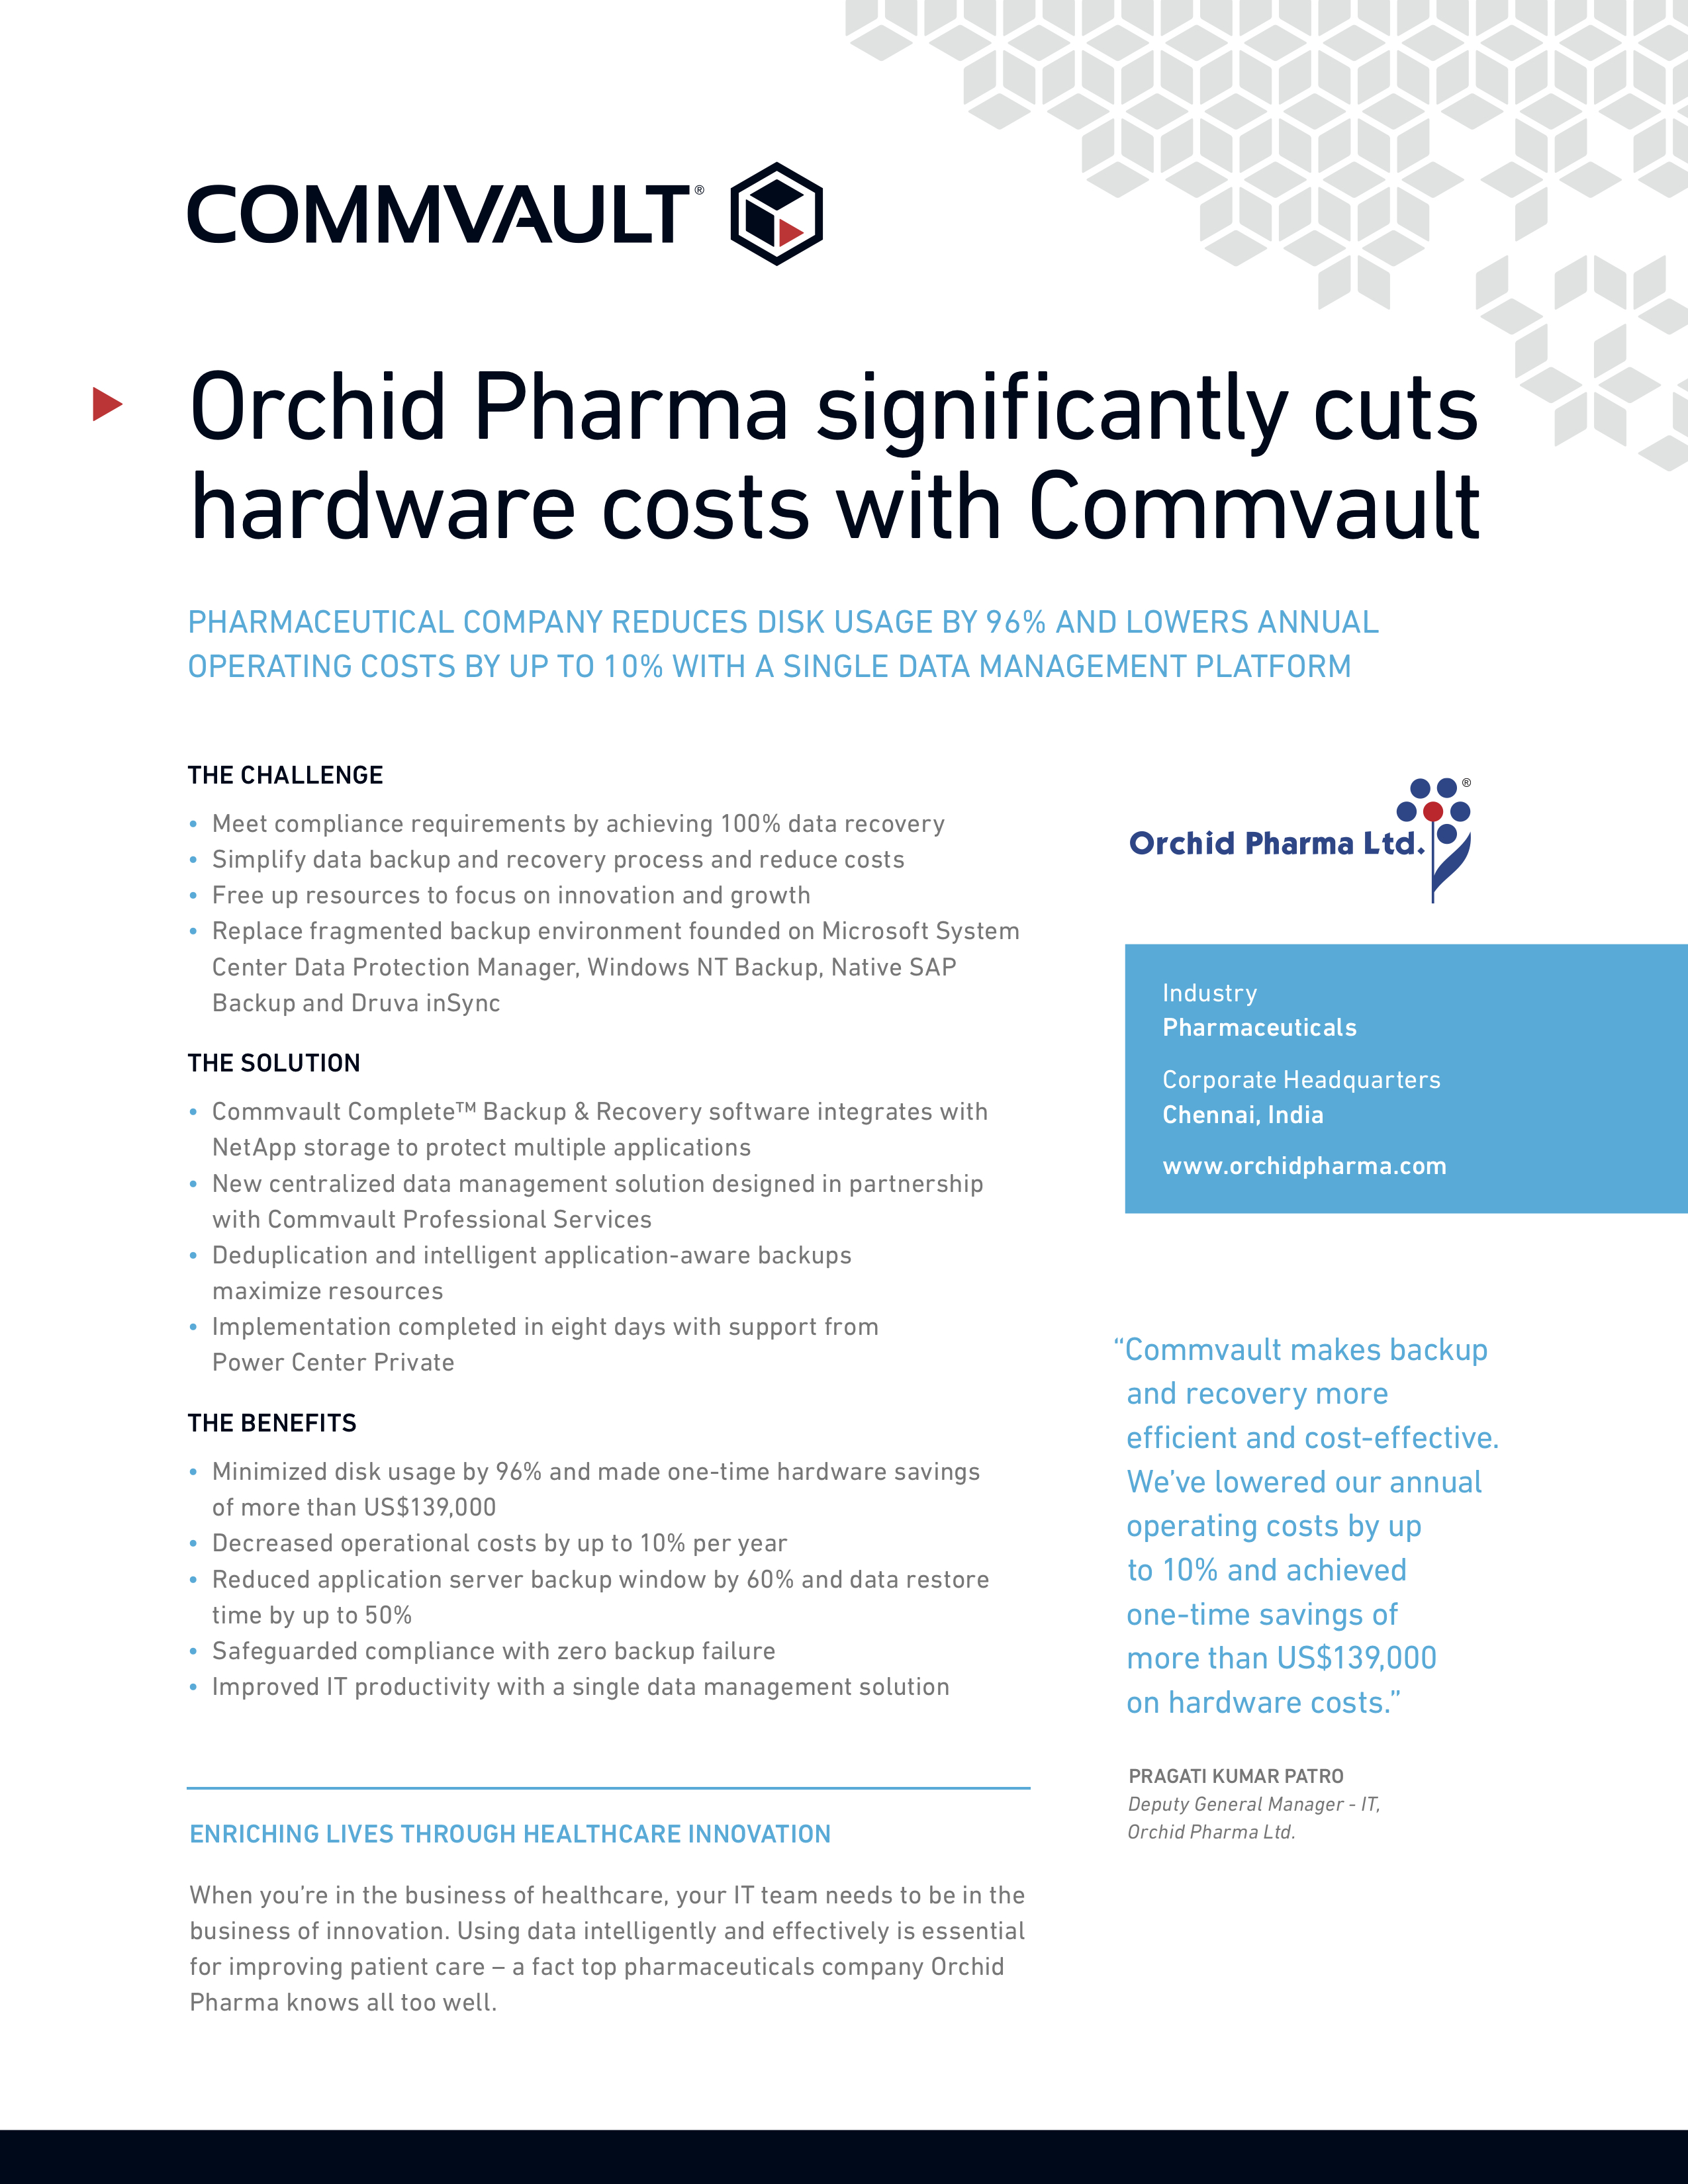 Orchid pharma case study